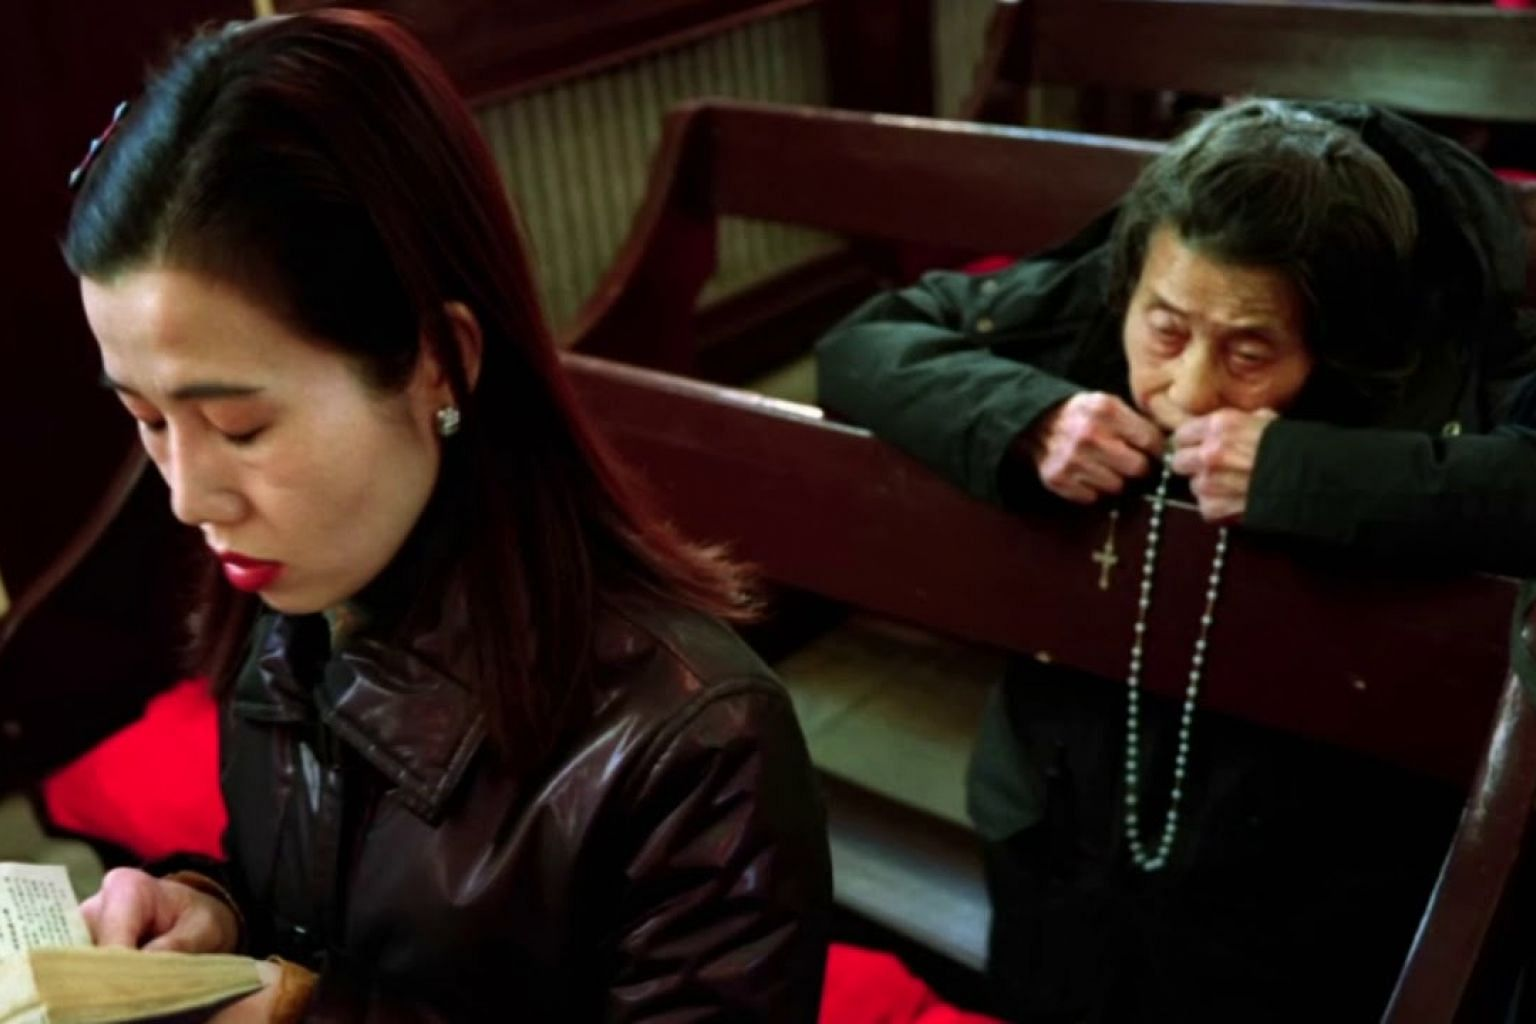 Vatican, China reach deal on appointing bishops